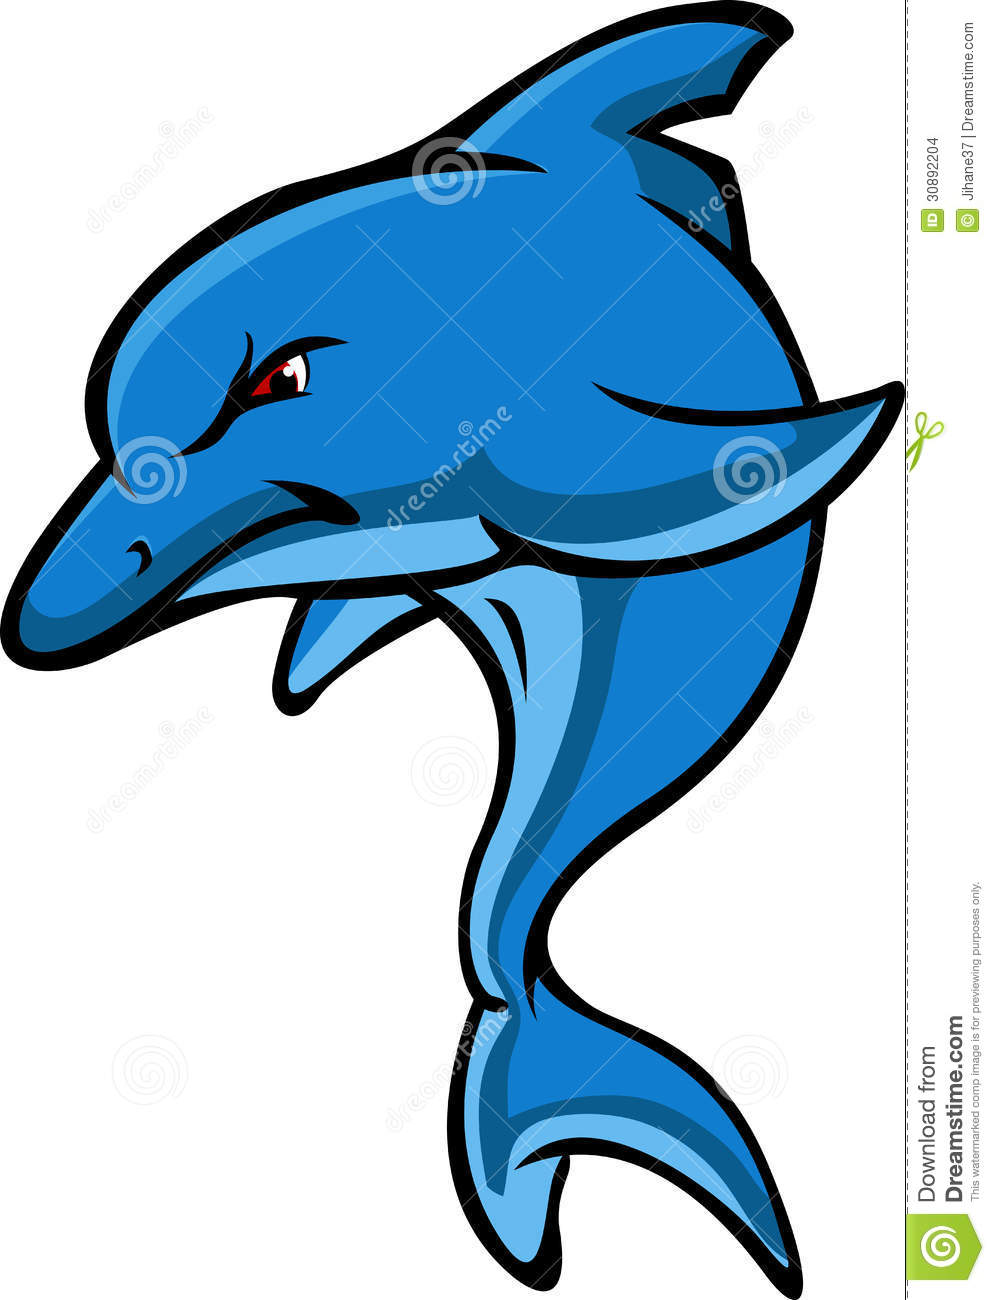 Cute Dolphin Cartoon Stock Images - Image: 30892204